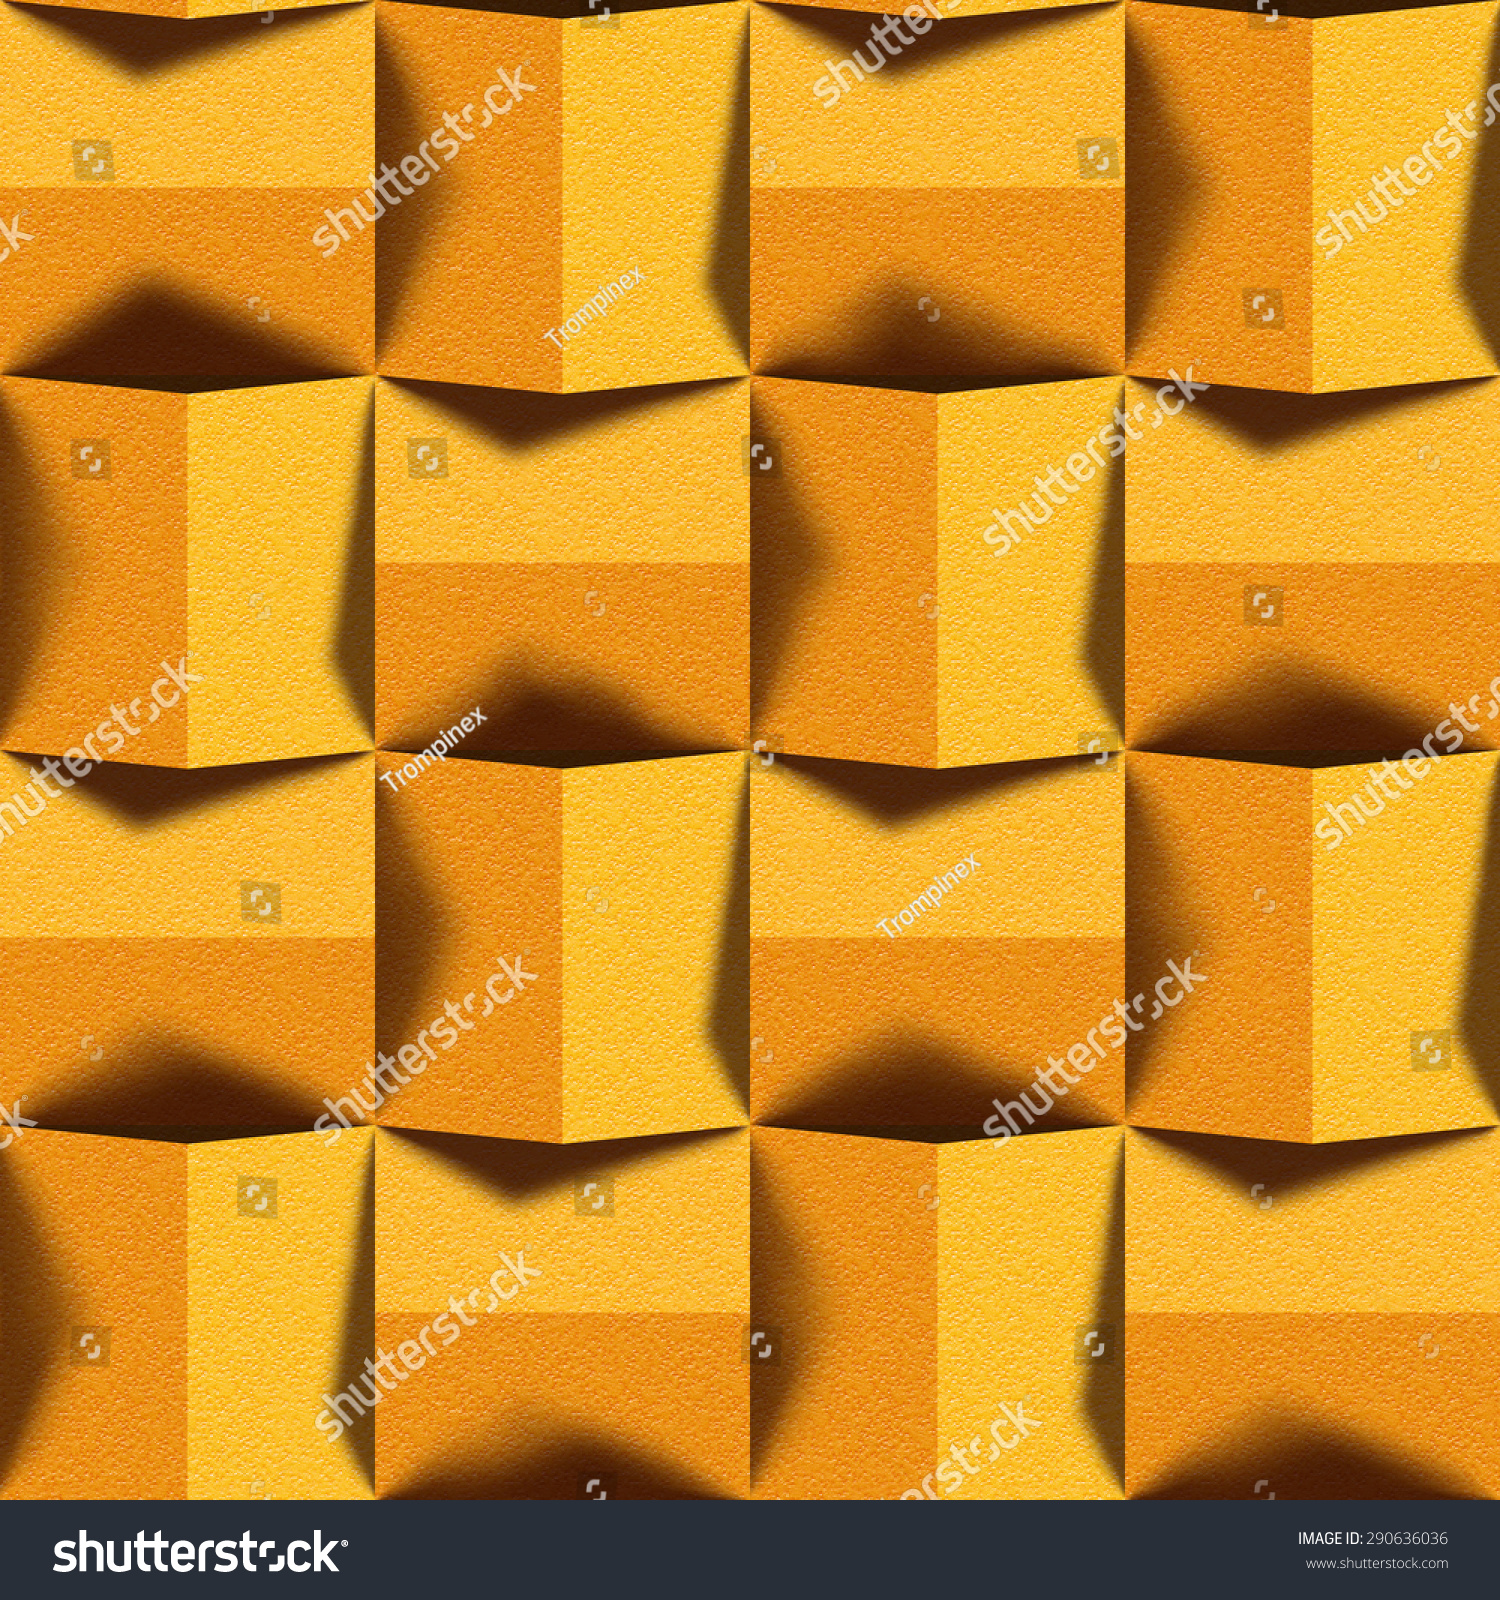 Abstract Decorative Panels 3 D Wall Panel Stock Photo & Image ...